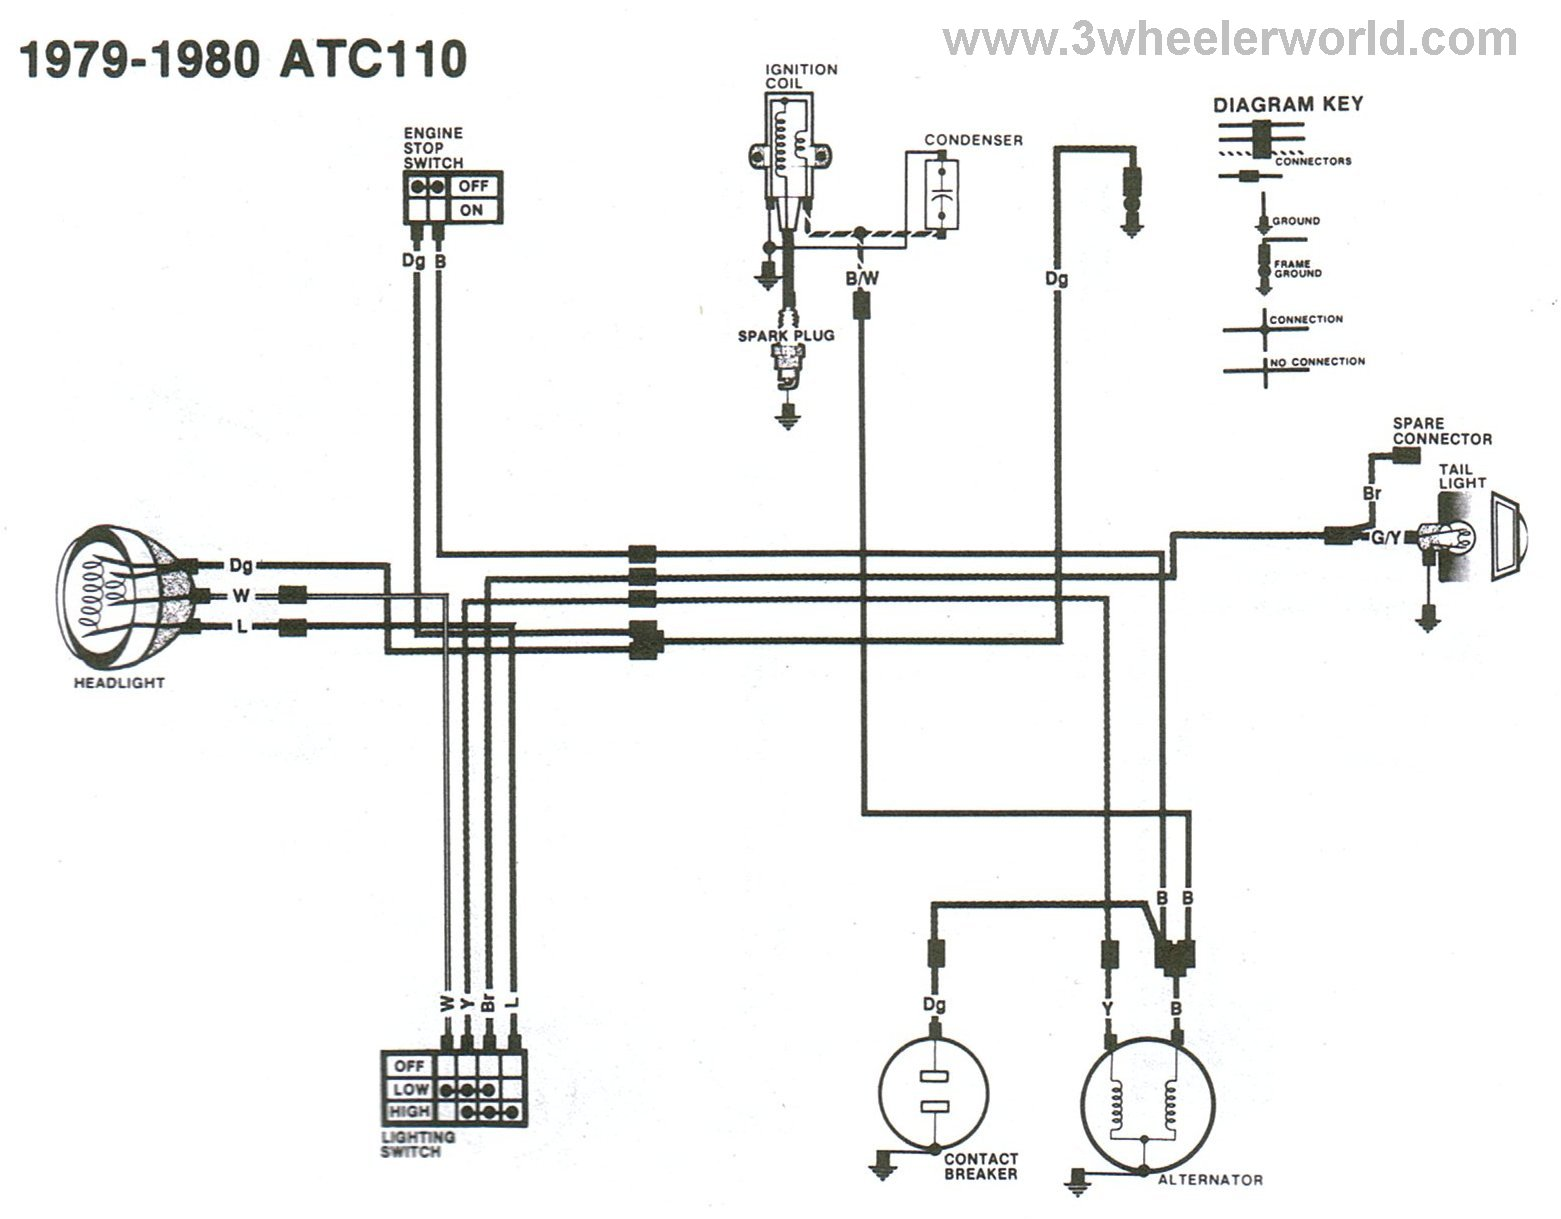 ATC110x79Thru80 3 wheeler world tech help honda wiring diagrams bajaj 4 stroke three wheeler wiring diagram at arjmand.co